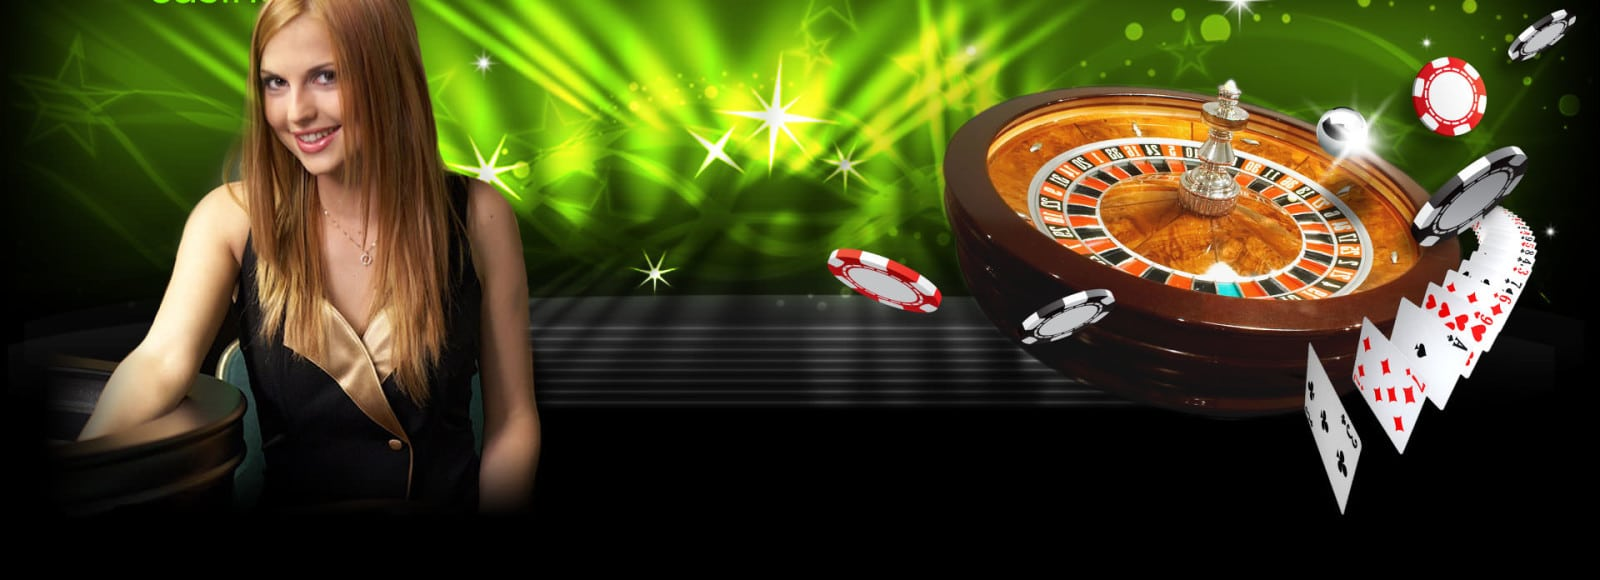 88 free no deposit bonus for 888 casino